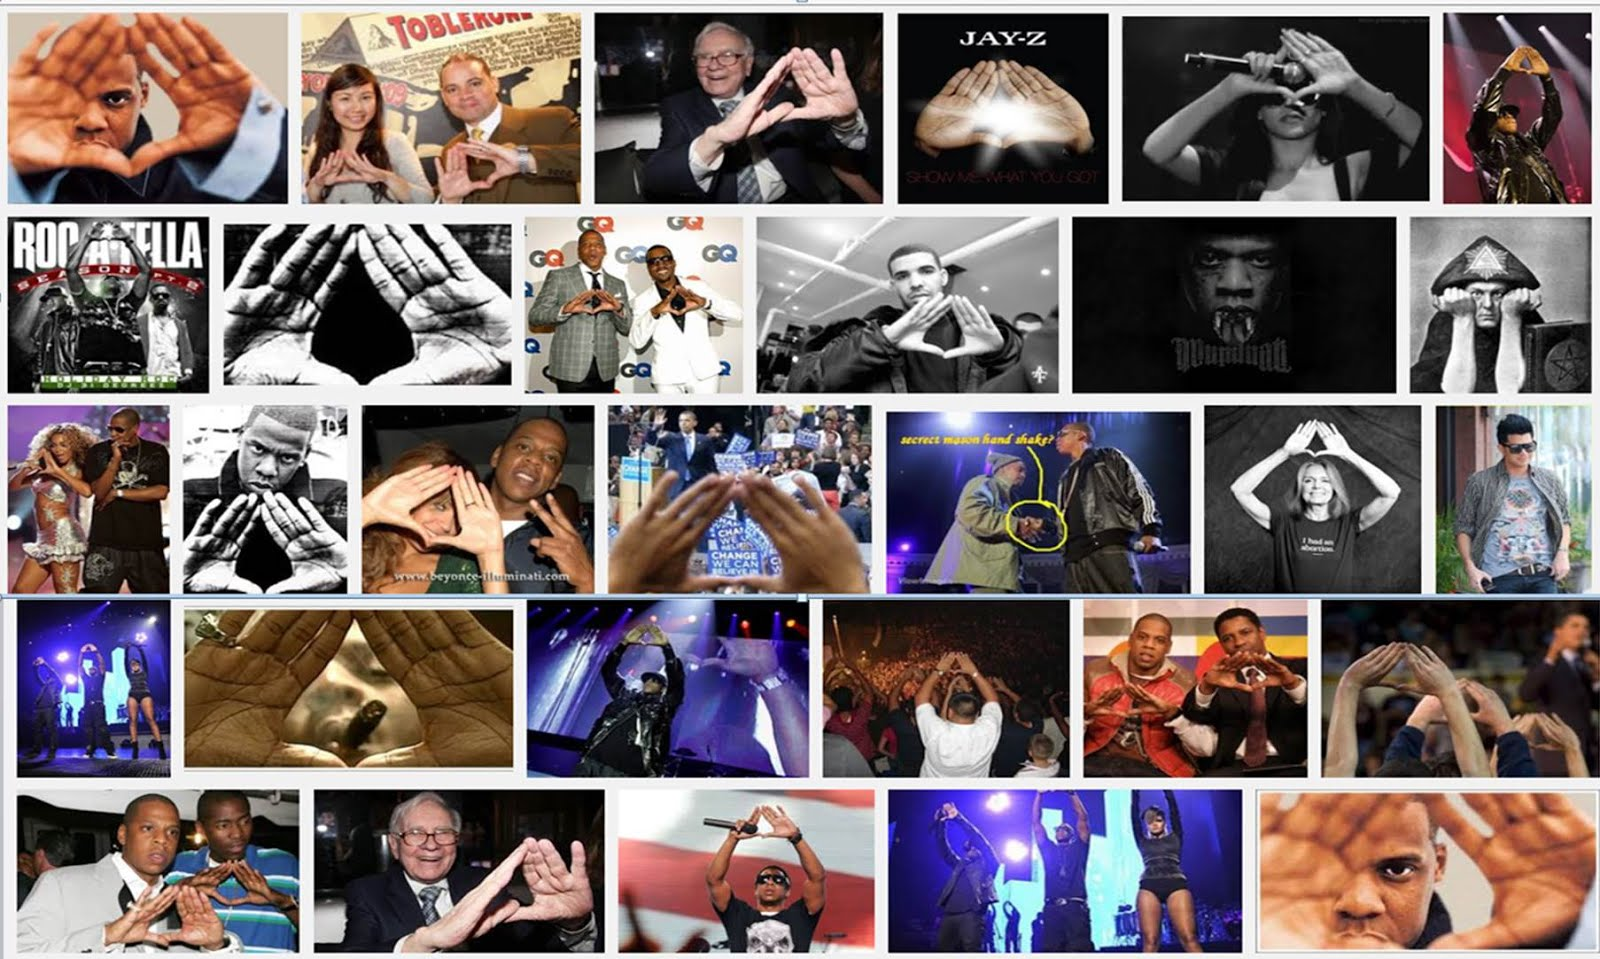 On Jay Zs Roc Illuminati Pyramid Hand Sign Symbol True Freethinker